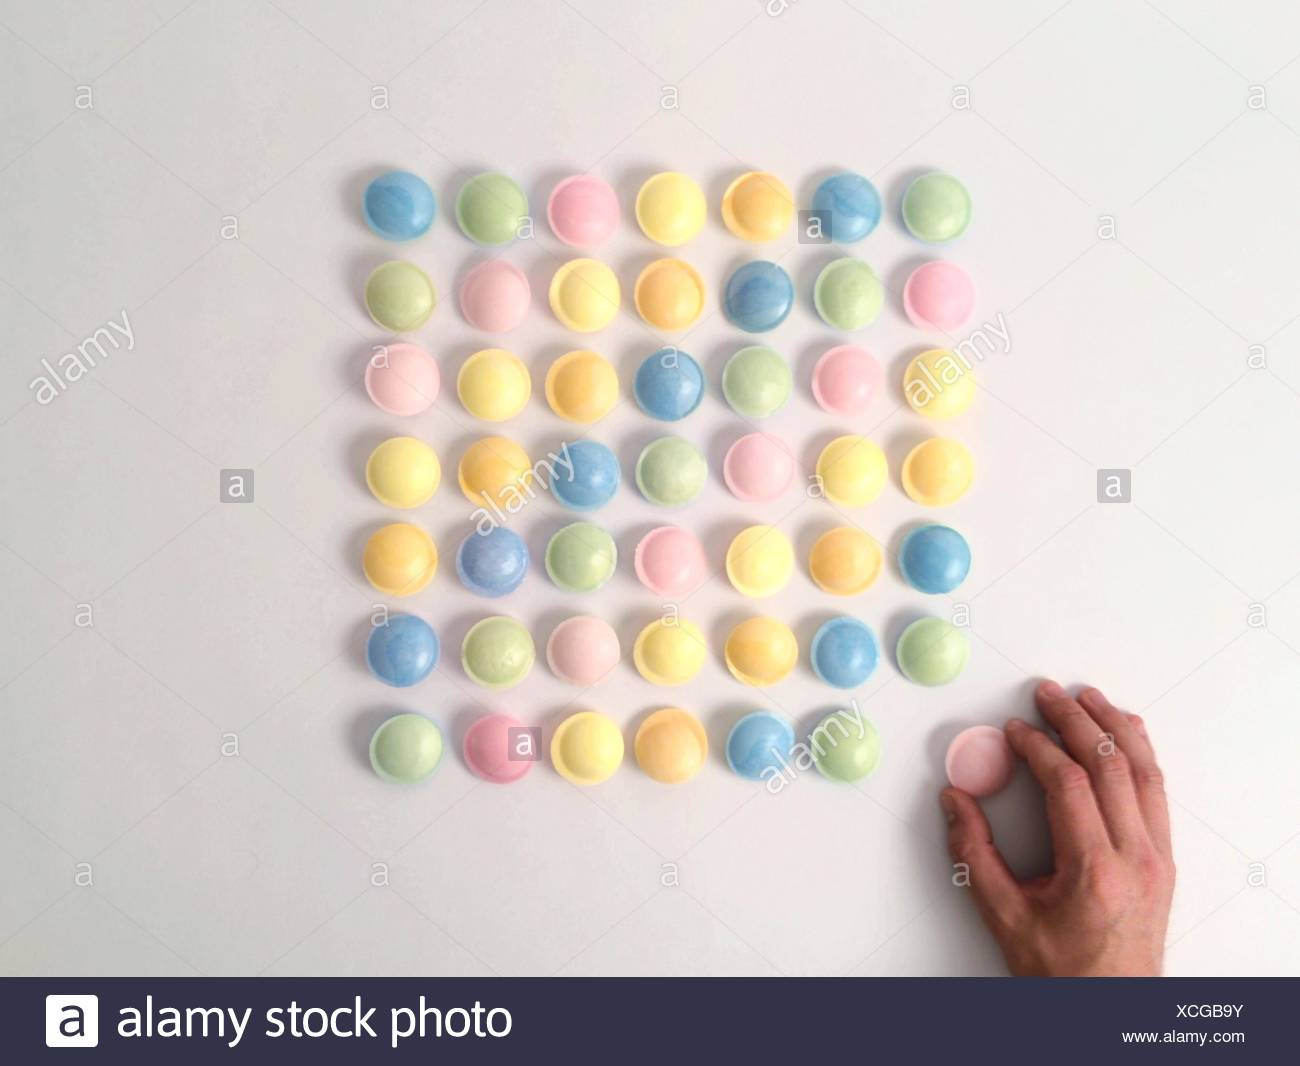 Directly Above View Of Person Arranging Candies Against White Background - Stock Image